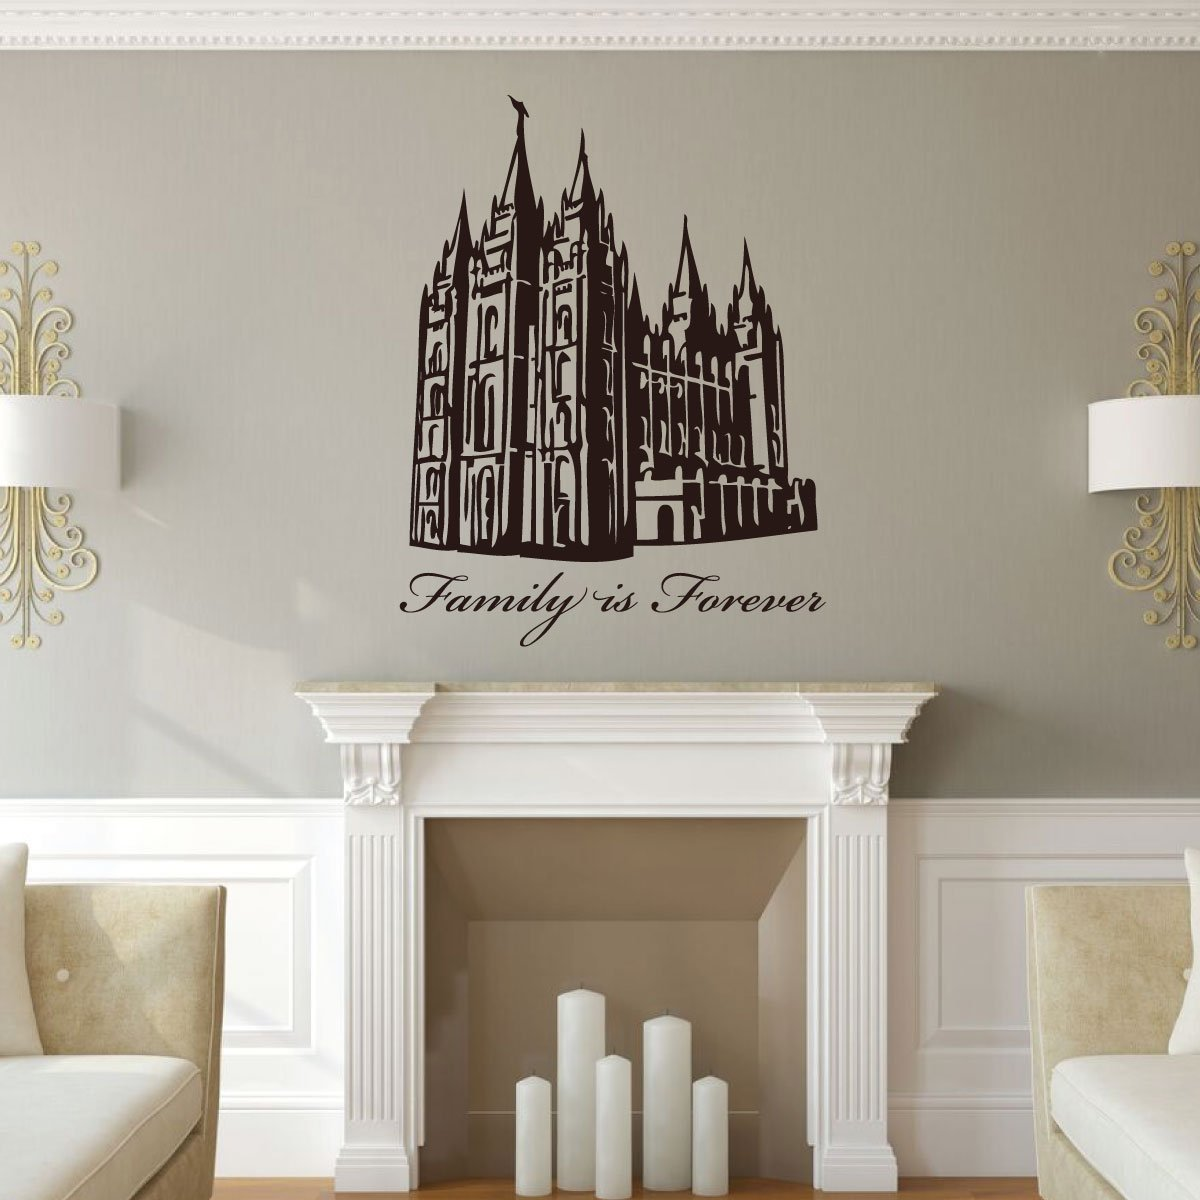 Family is Forever Wall Decal with Salt Lake Temple - LDS Vinyl Art Silhouette Home Decor for Living Room, Bedroom, Kitchen, Office